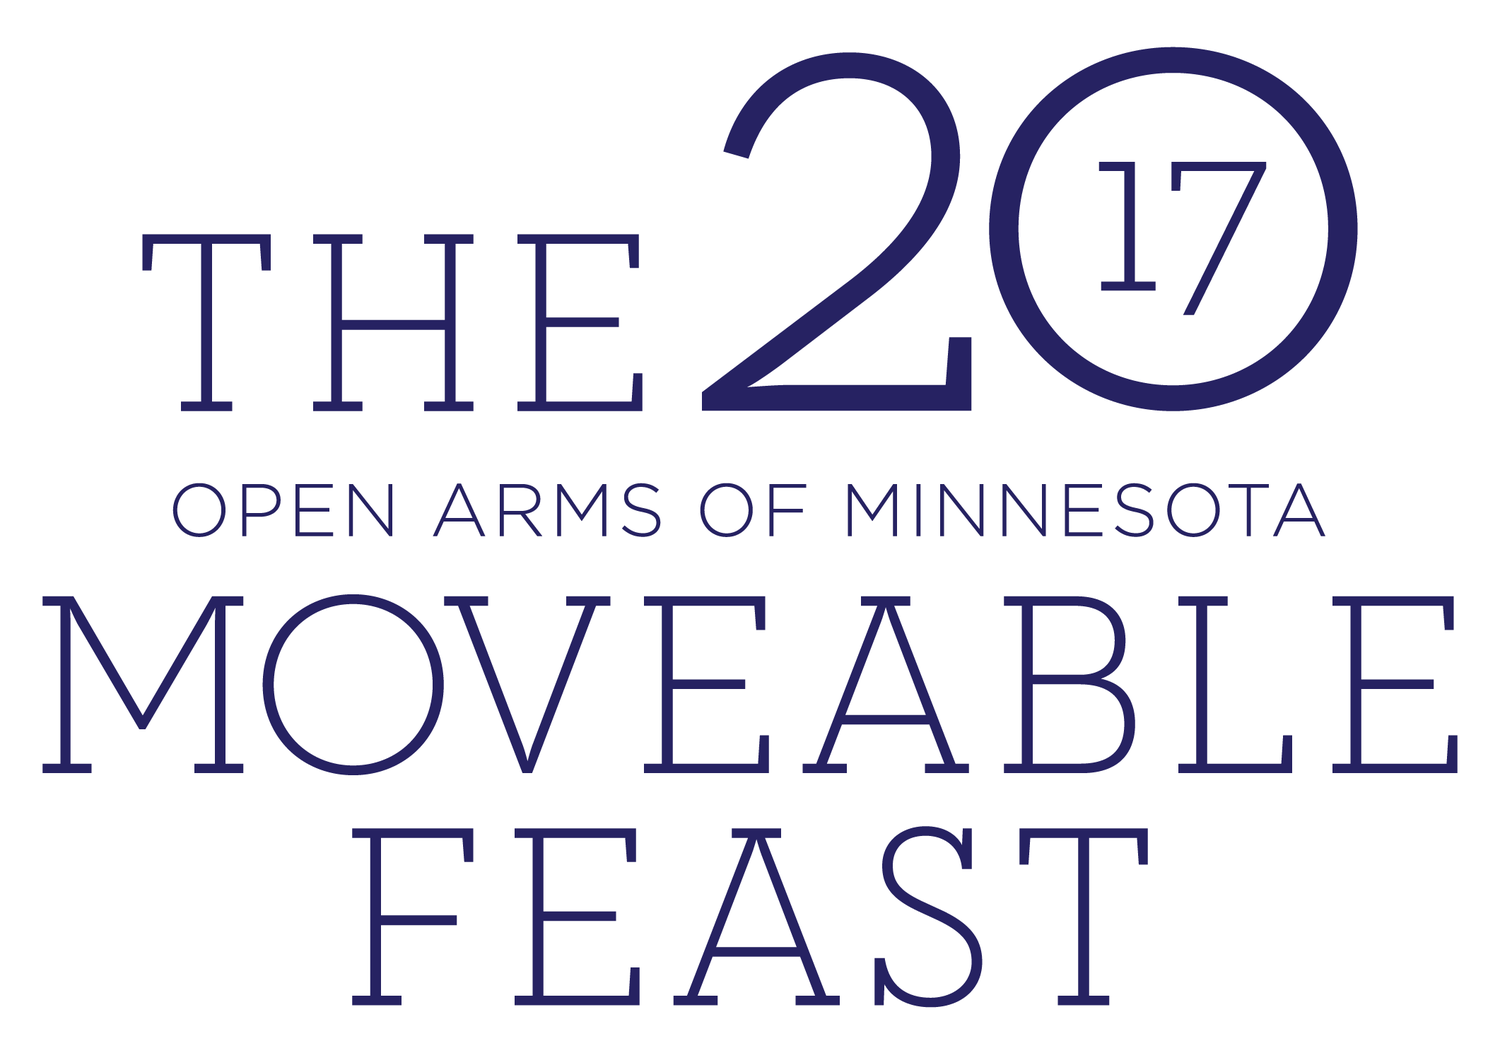 Open Arms Moveable Feast